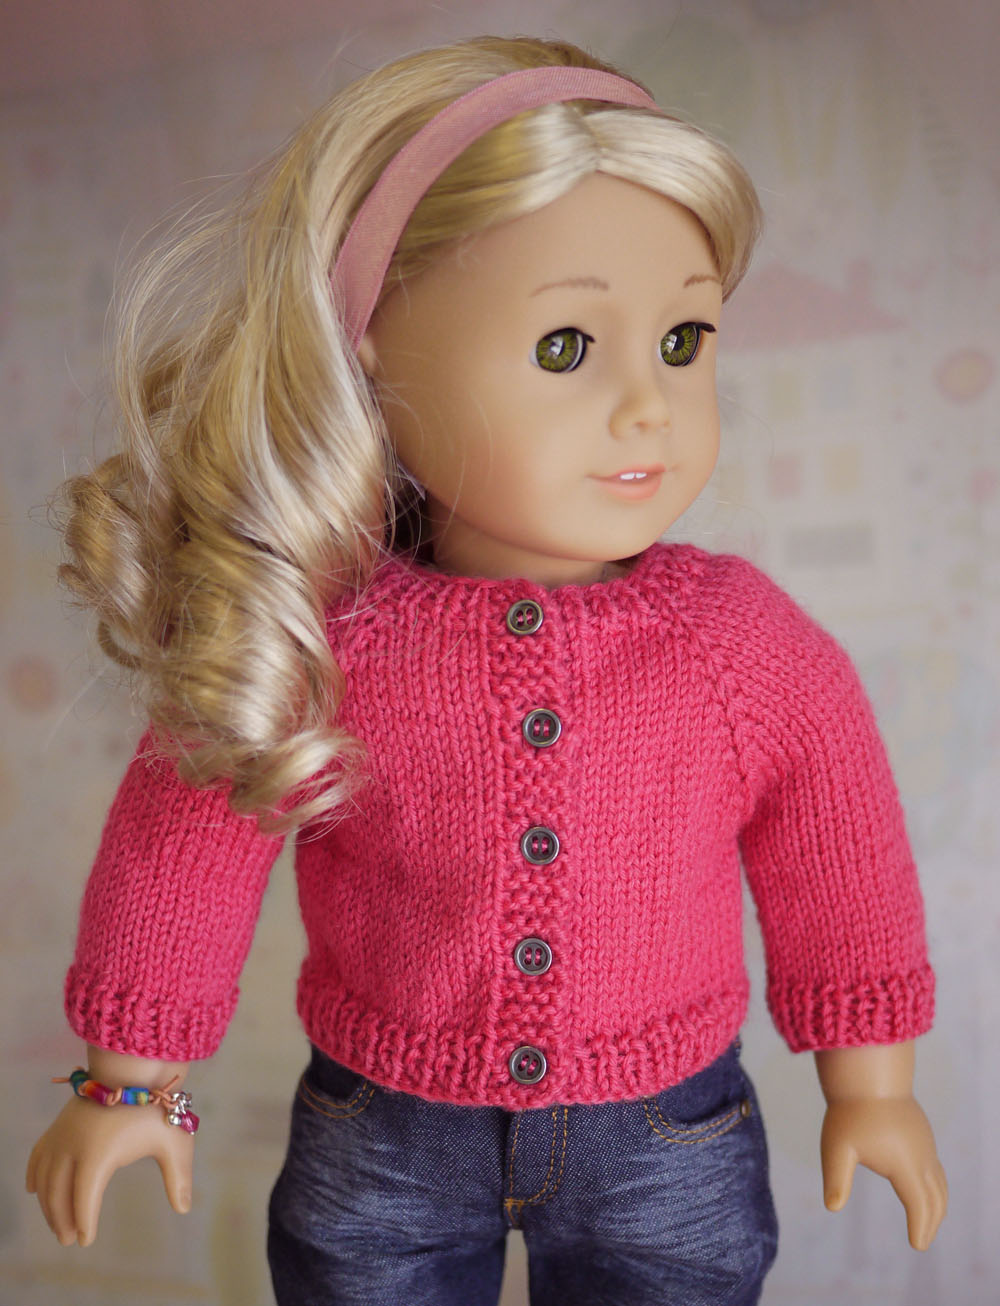 Knitting Patterns For American Girl Dolls : American Girl Doll Cardigan Sweater Knitting Pattern ...